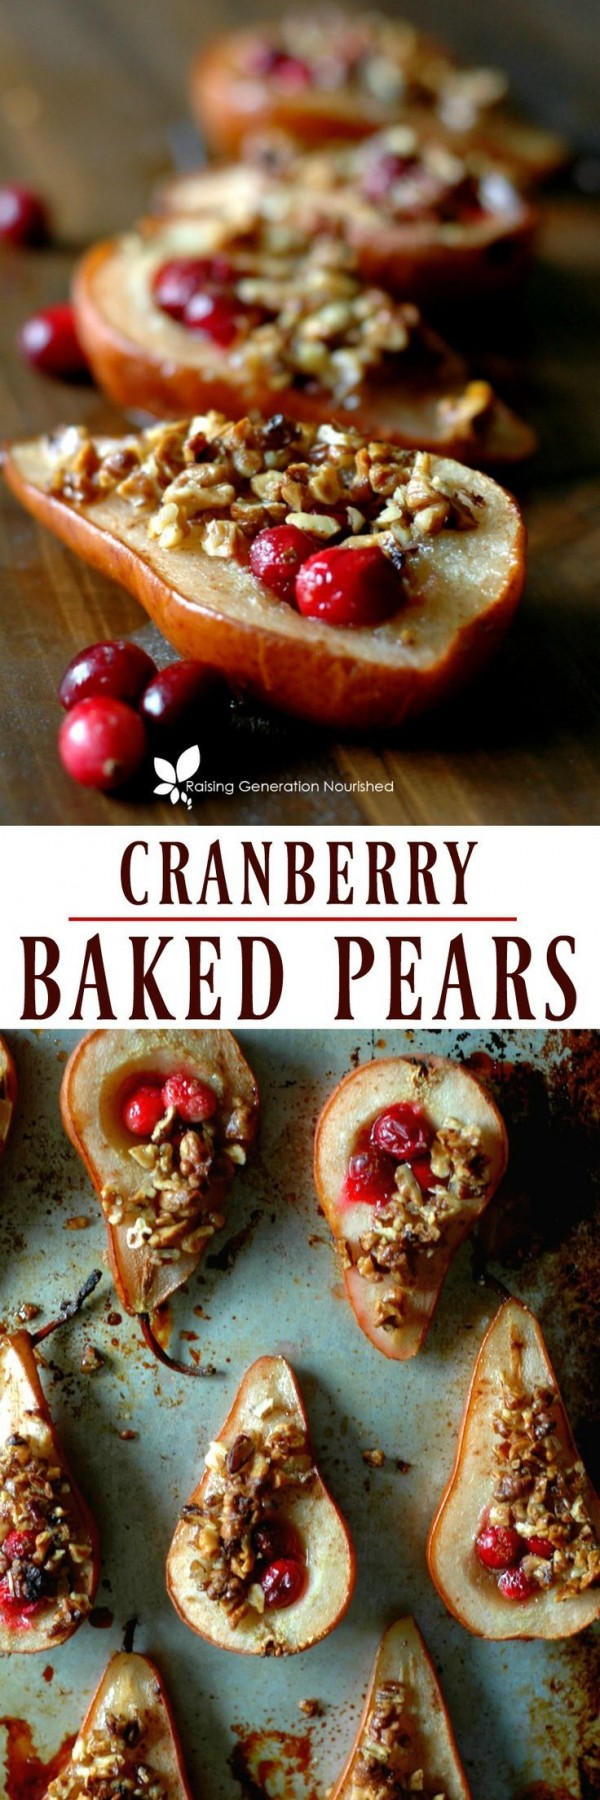 Get the recipe Cranberry Baked Pears @recipes_to_go